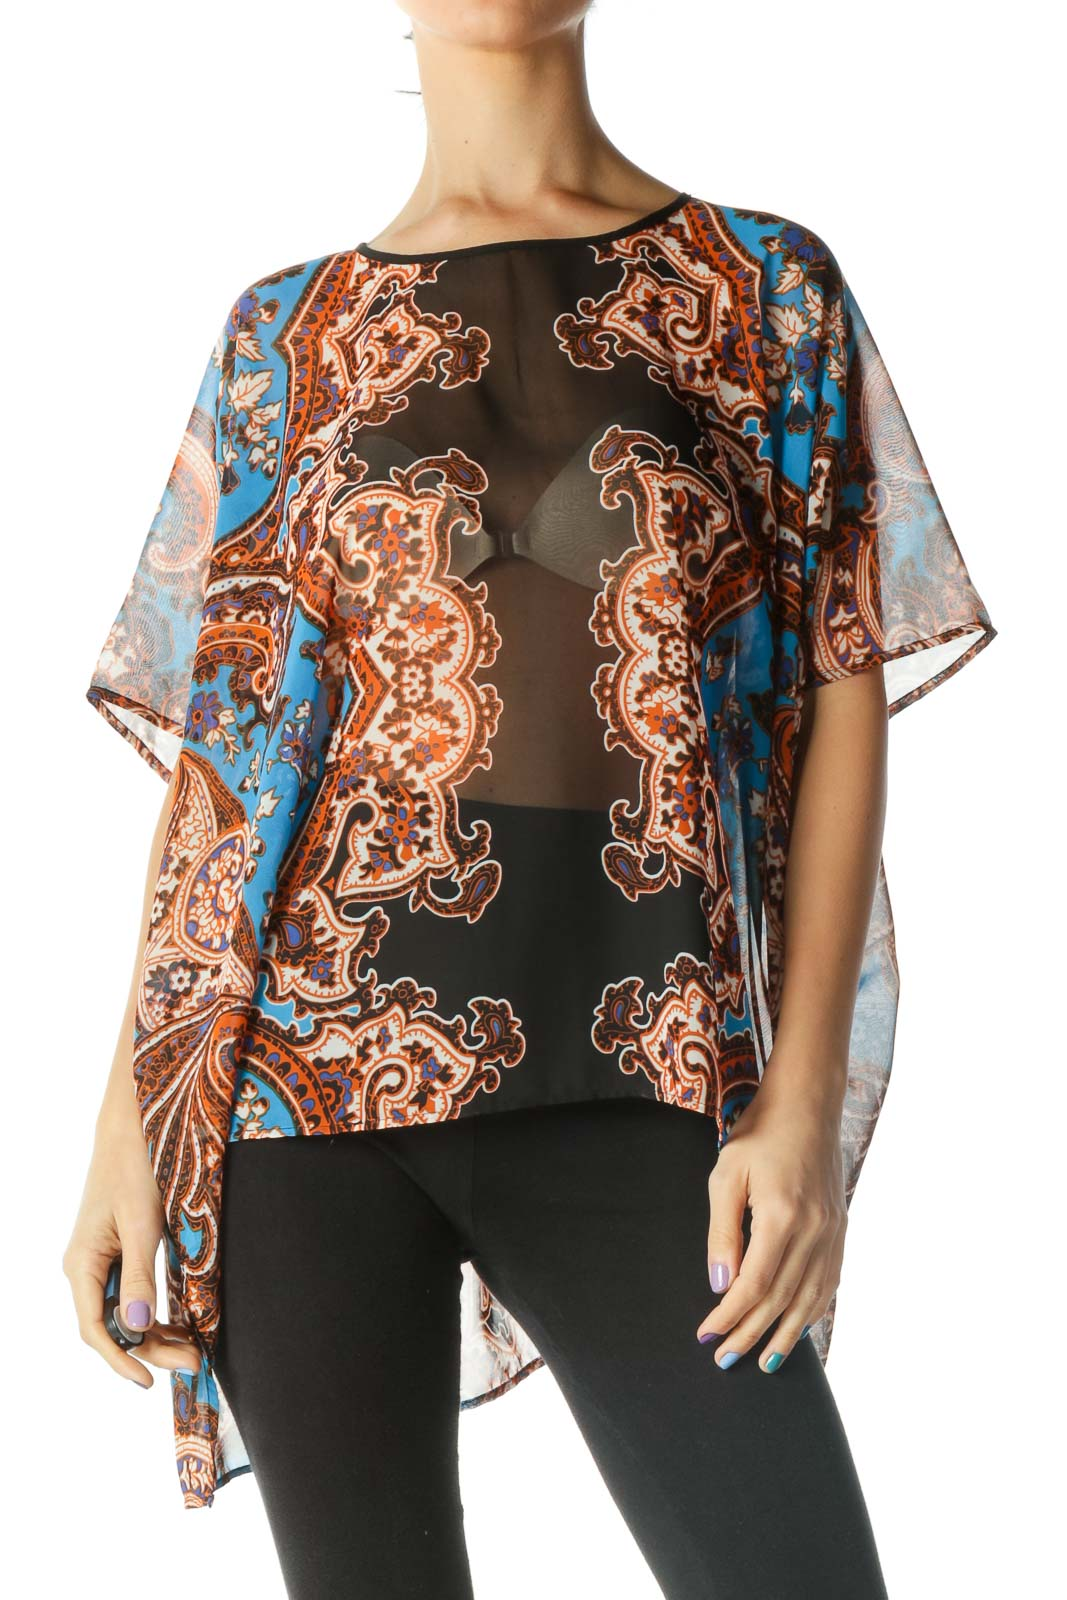 Black, Blue, and Orange See Through Floral Print Flowy Blouse Front